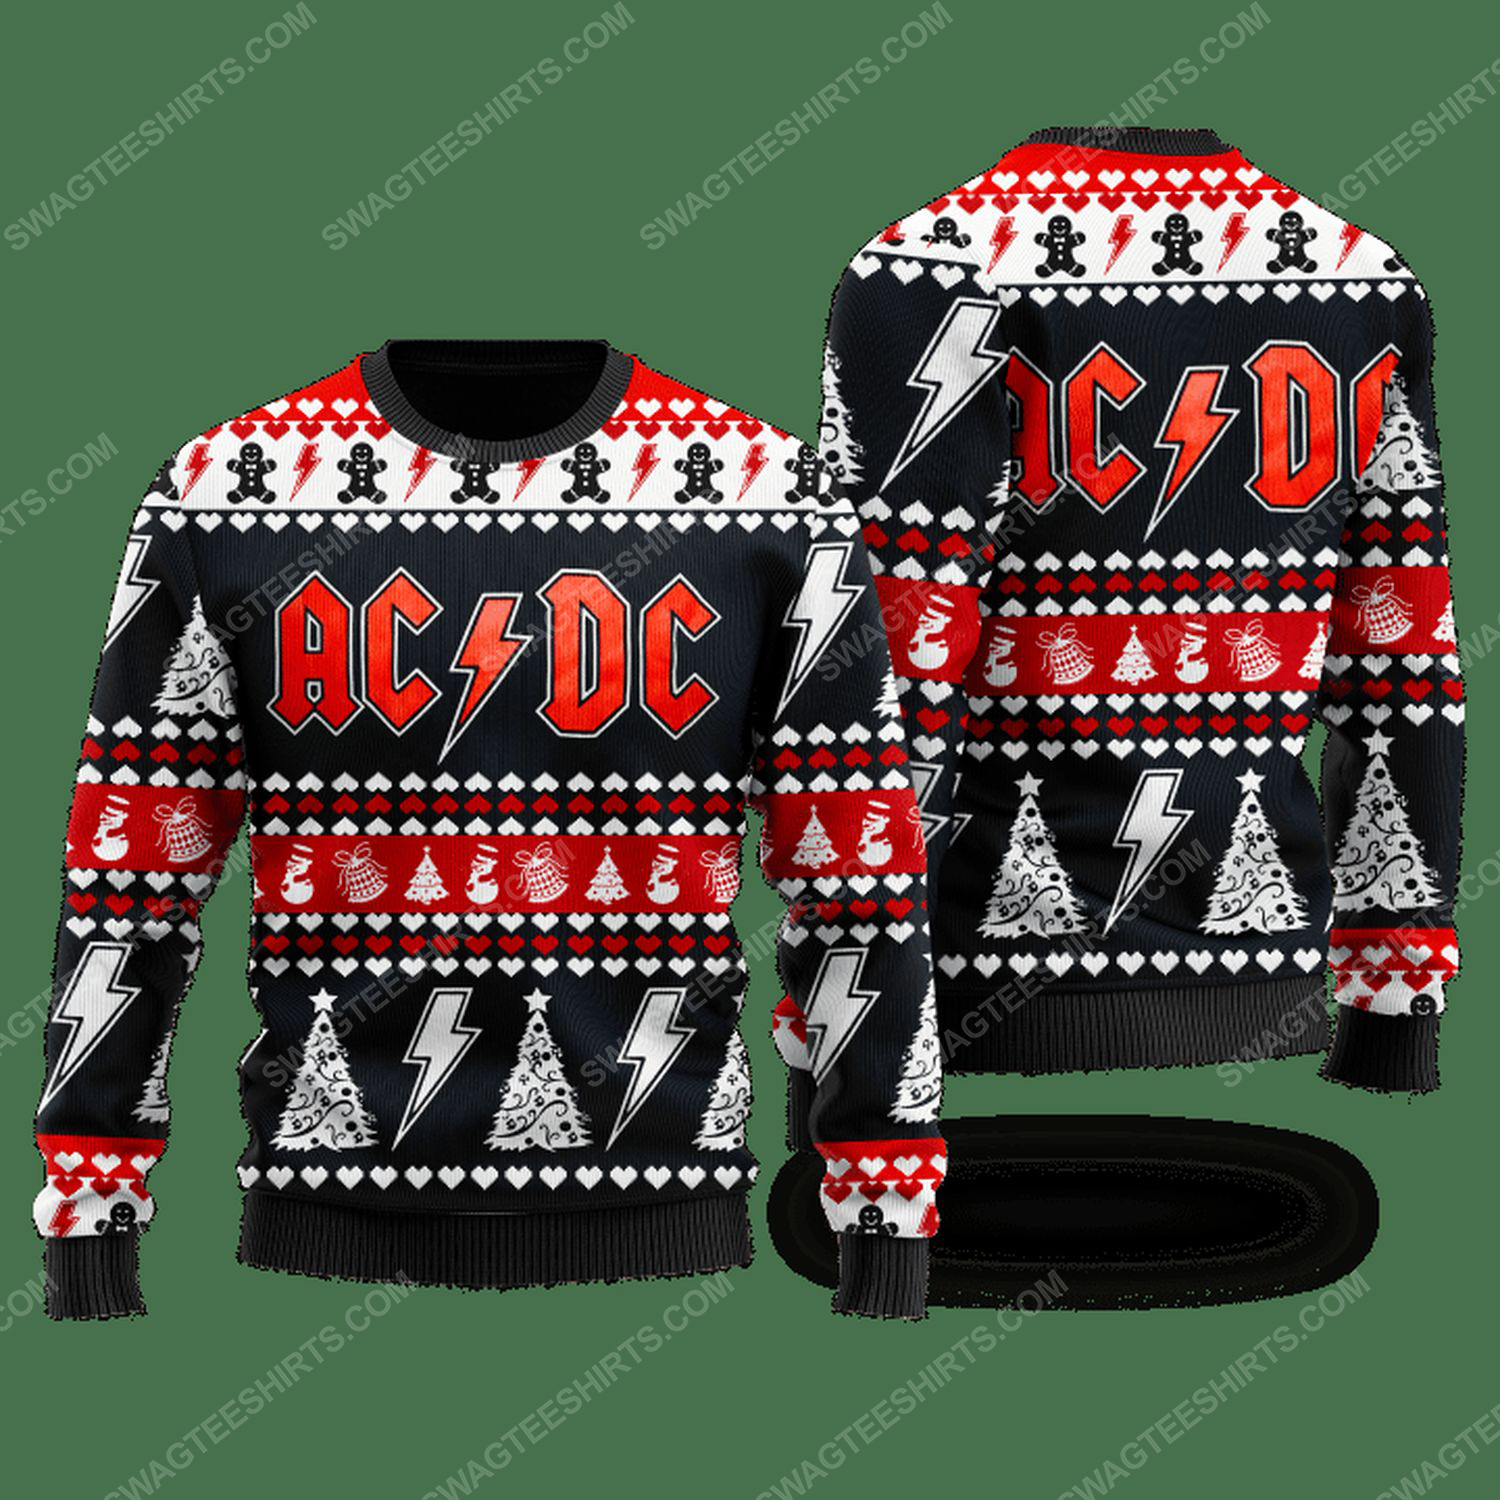 AC DC rock band ugly christmas sweater